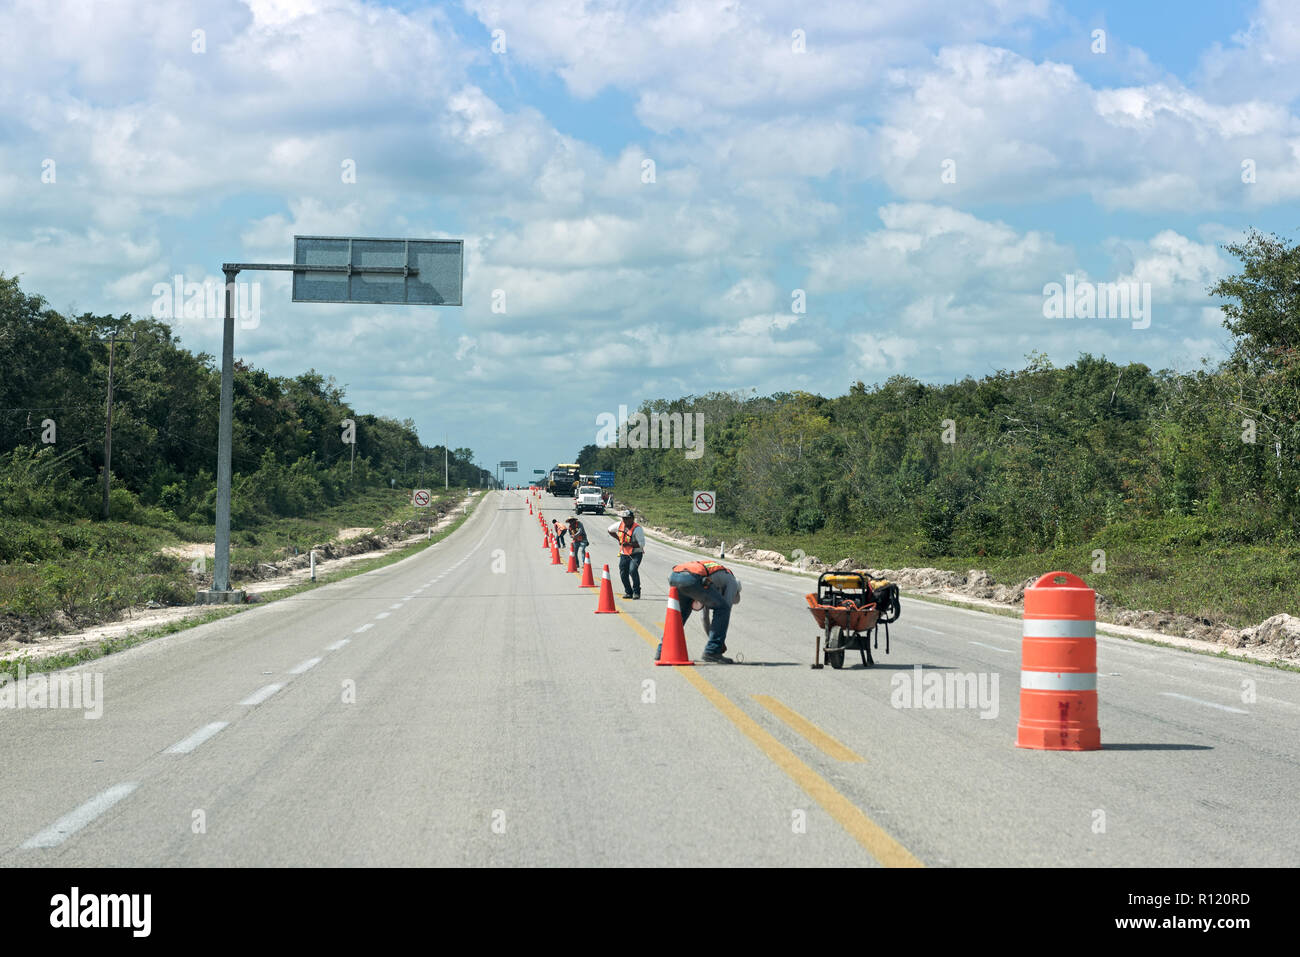 road works on the 307 road near bacalar, quintana roo, mexico. - Stock Image